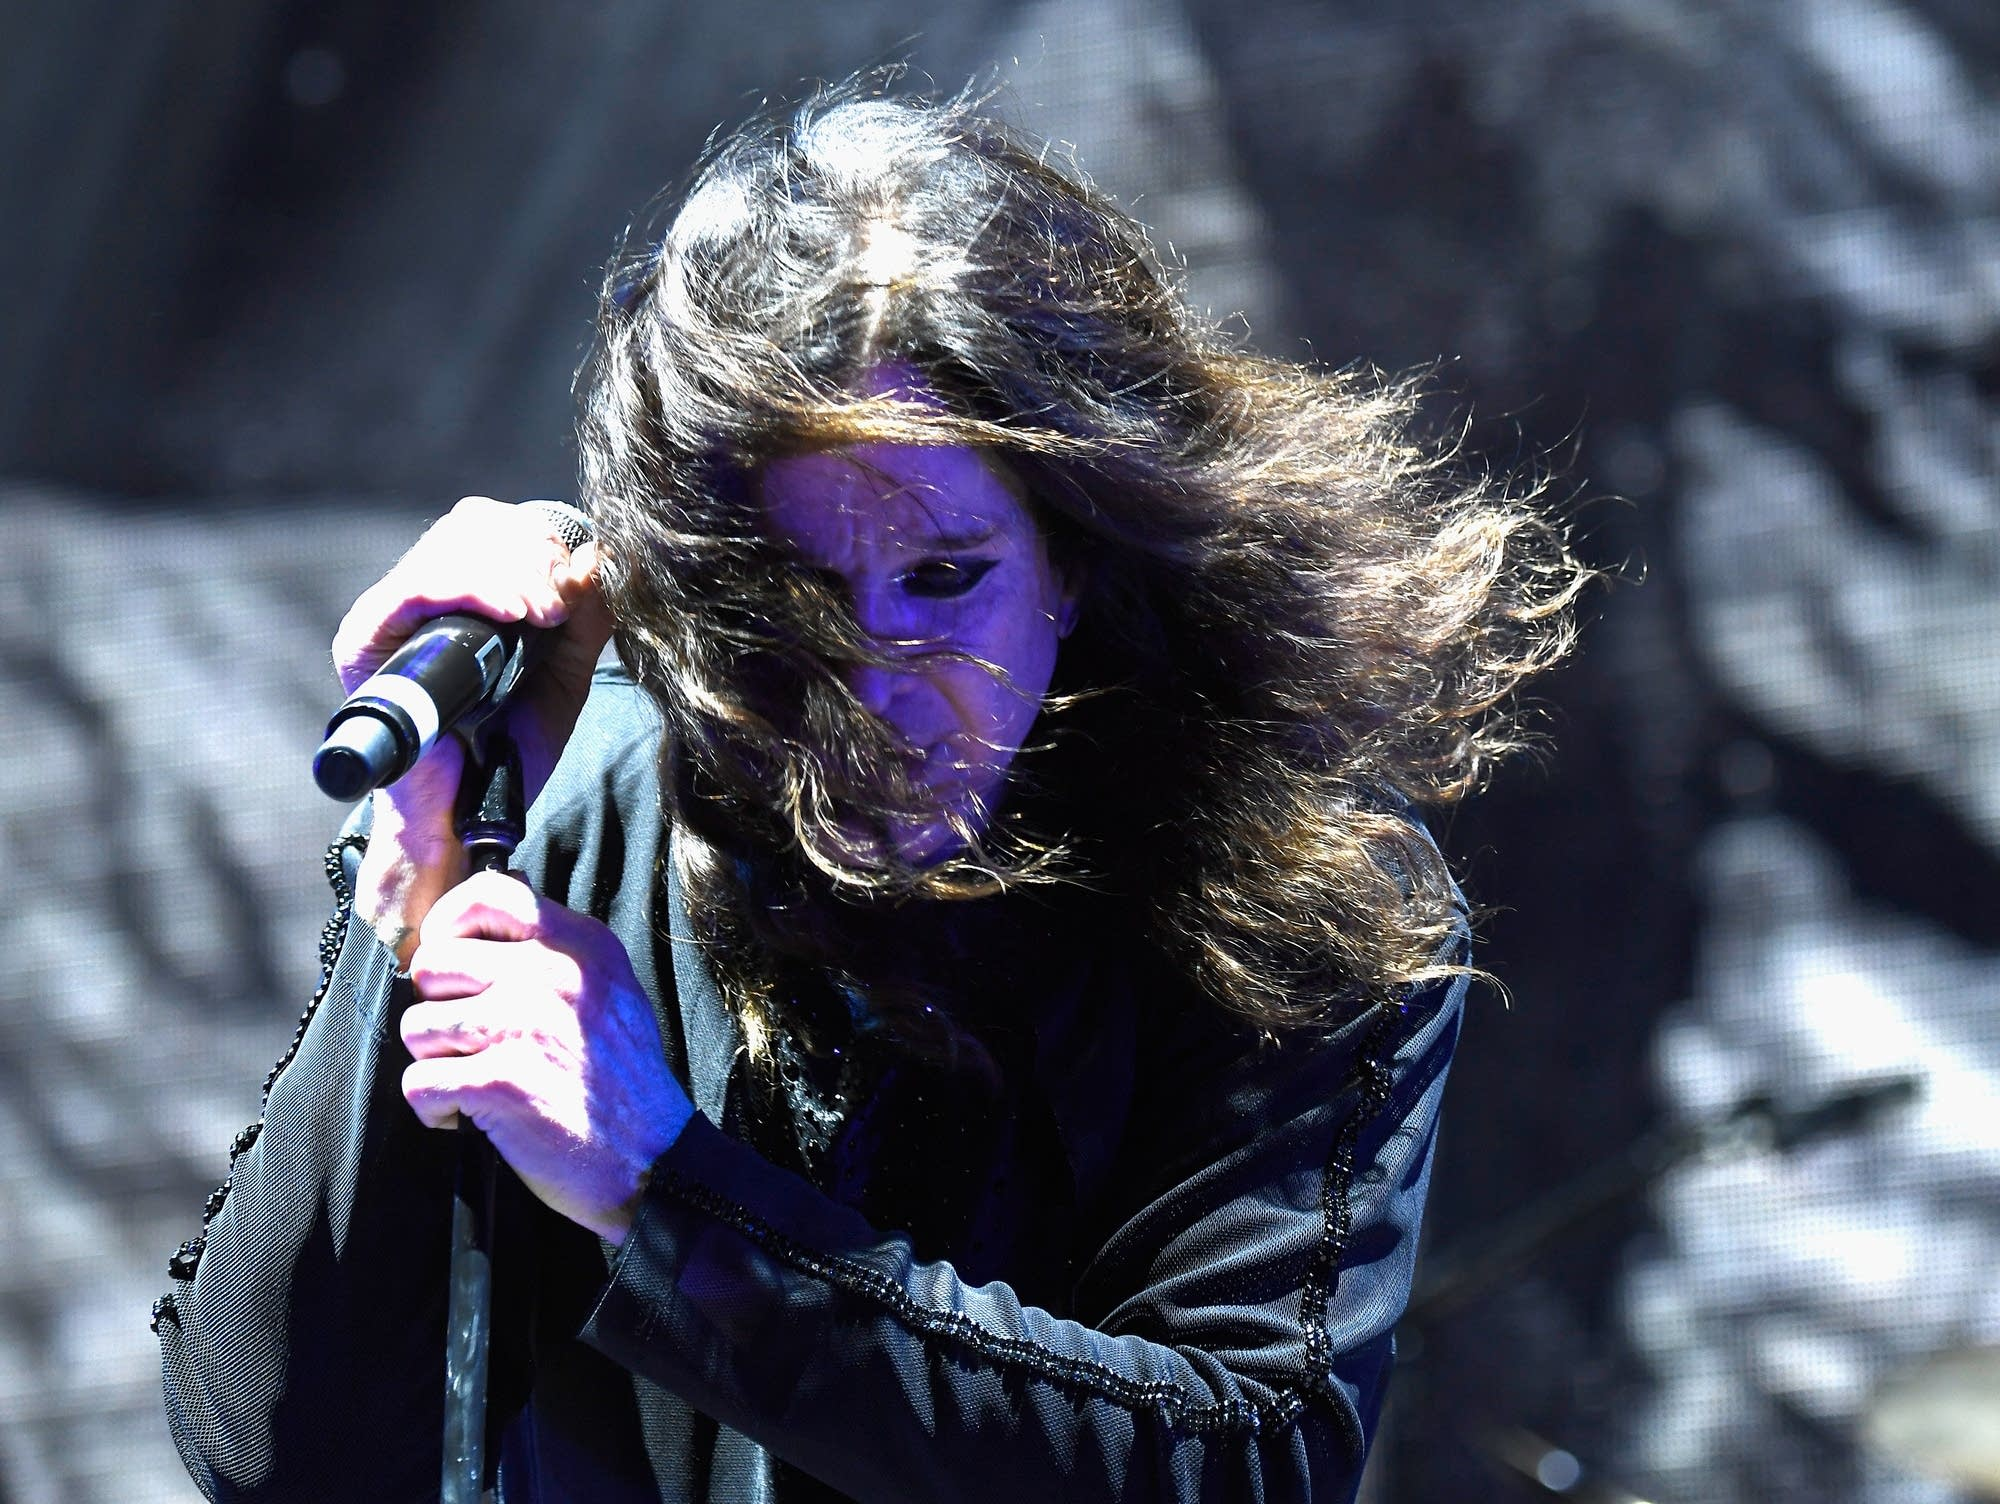 Ozzy Osbourne performs in Los Angeles during Ozzfest 2016.